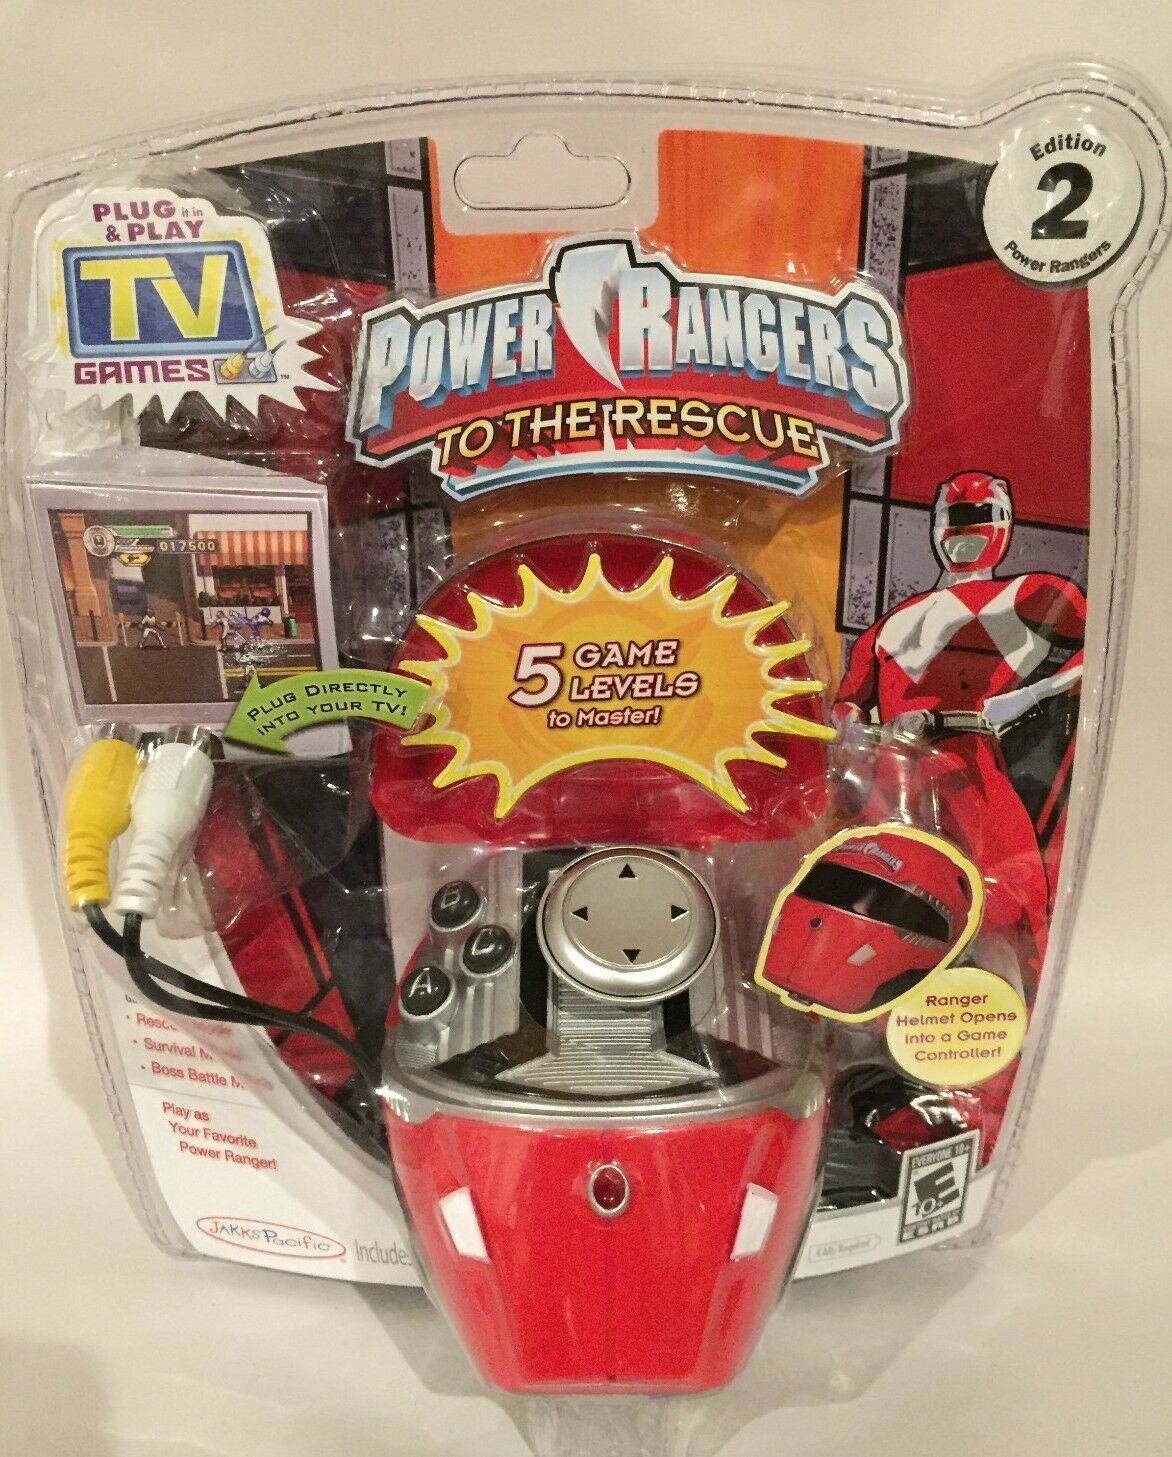 Rare Power Rangers to The Rescue Plug And Play TV game 5 level video game. New